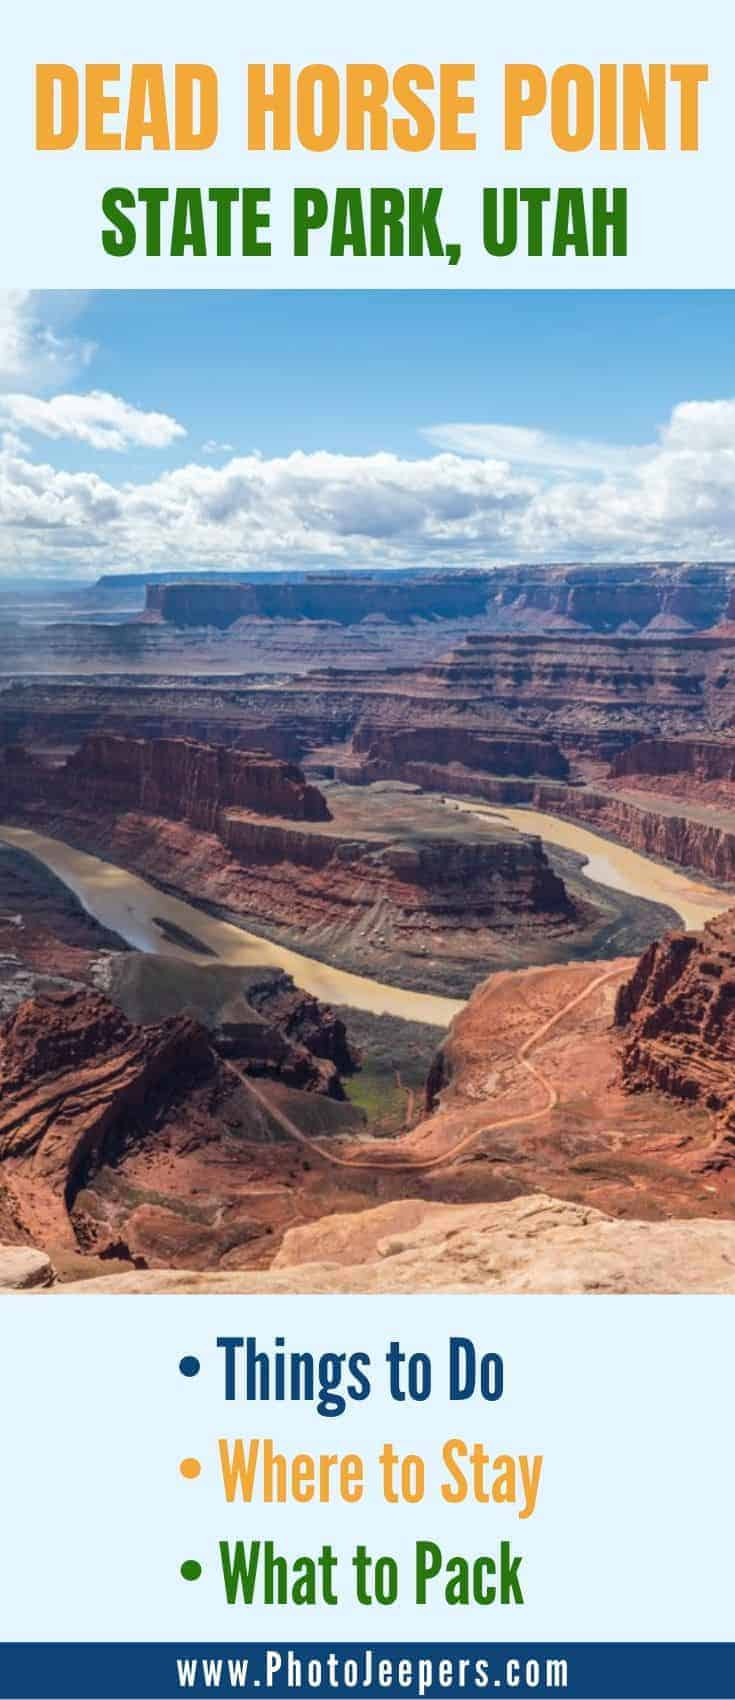 Dead Horse Point is a must-see location near Arches and Canyonlands. The views of the canyons carved by the Colorado River are stunning to see and photograph. Save this to use our tips for planning a trip to Dead Horse Point State Park in Utah. #utah #moab #deadhorsepoint #photojeepers